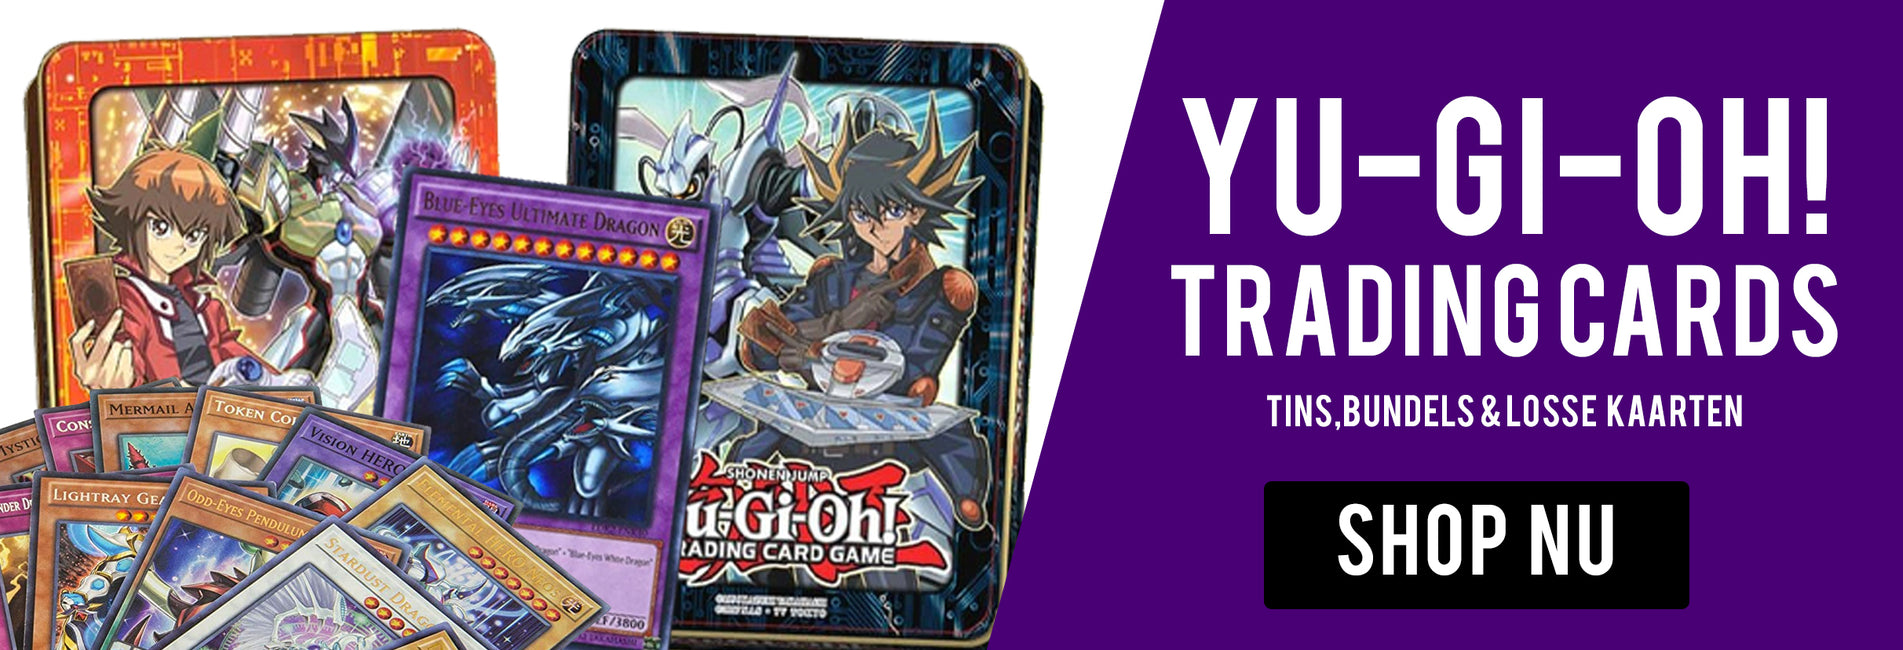 Yu Gi Oh! trading cards